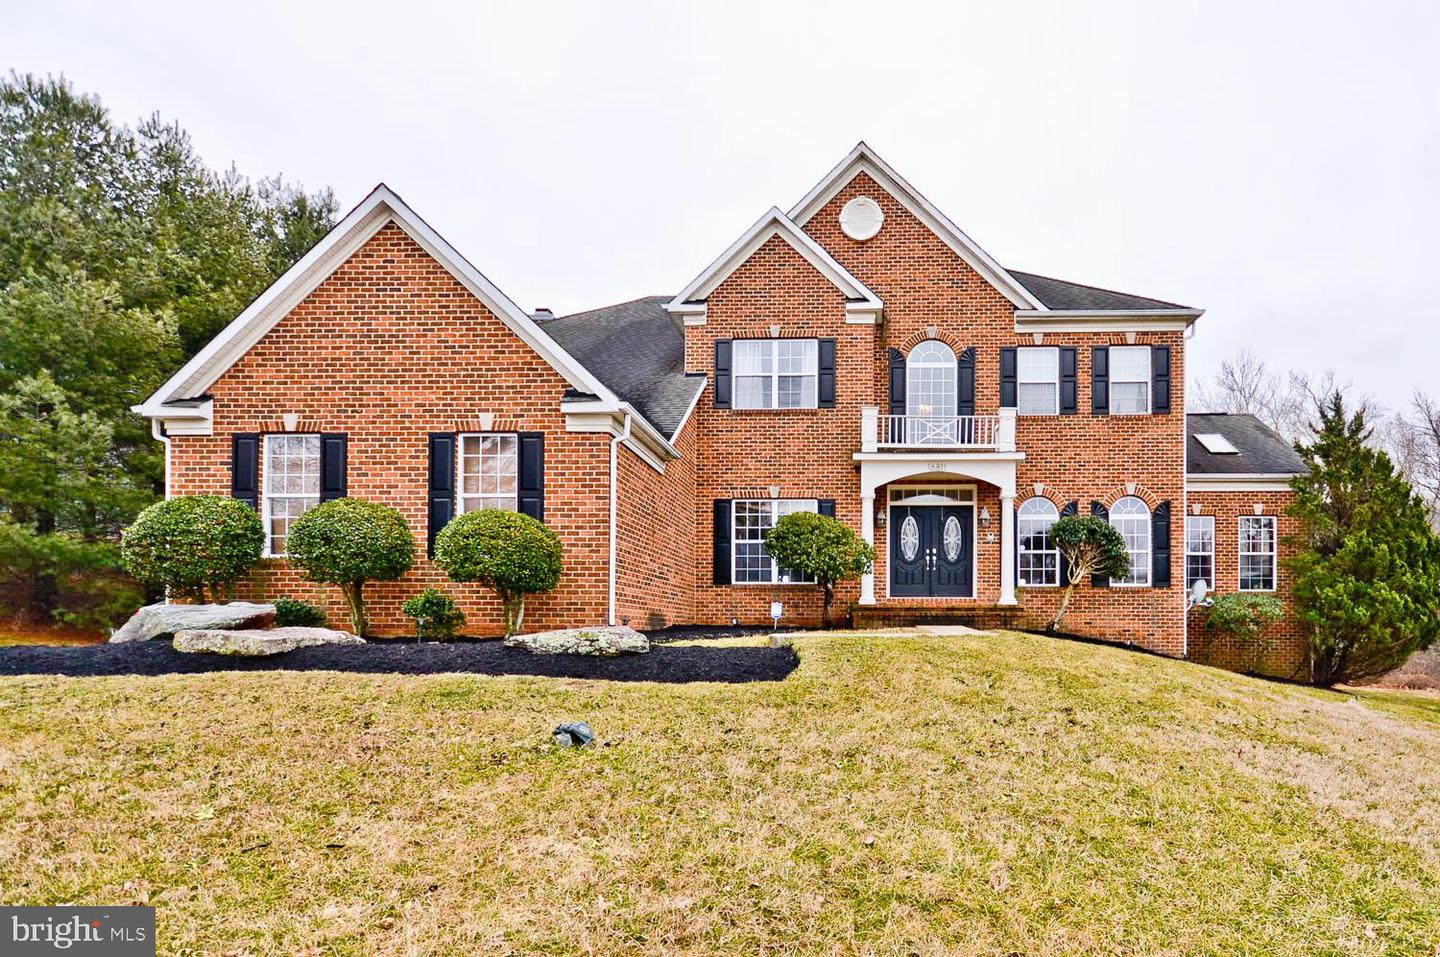 16811 FEDERAL HILL COURT, BOWIE, Maryland